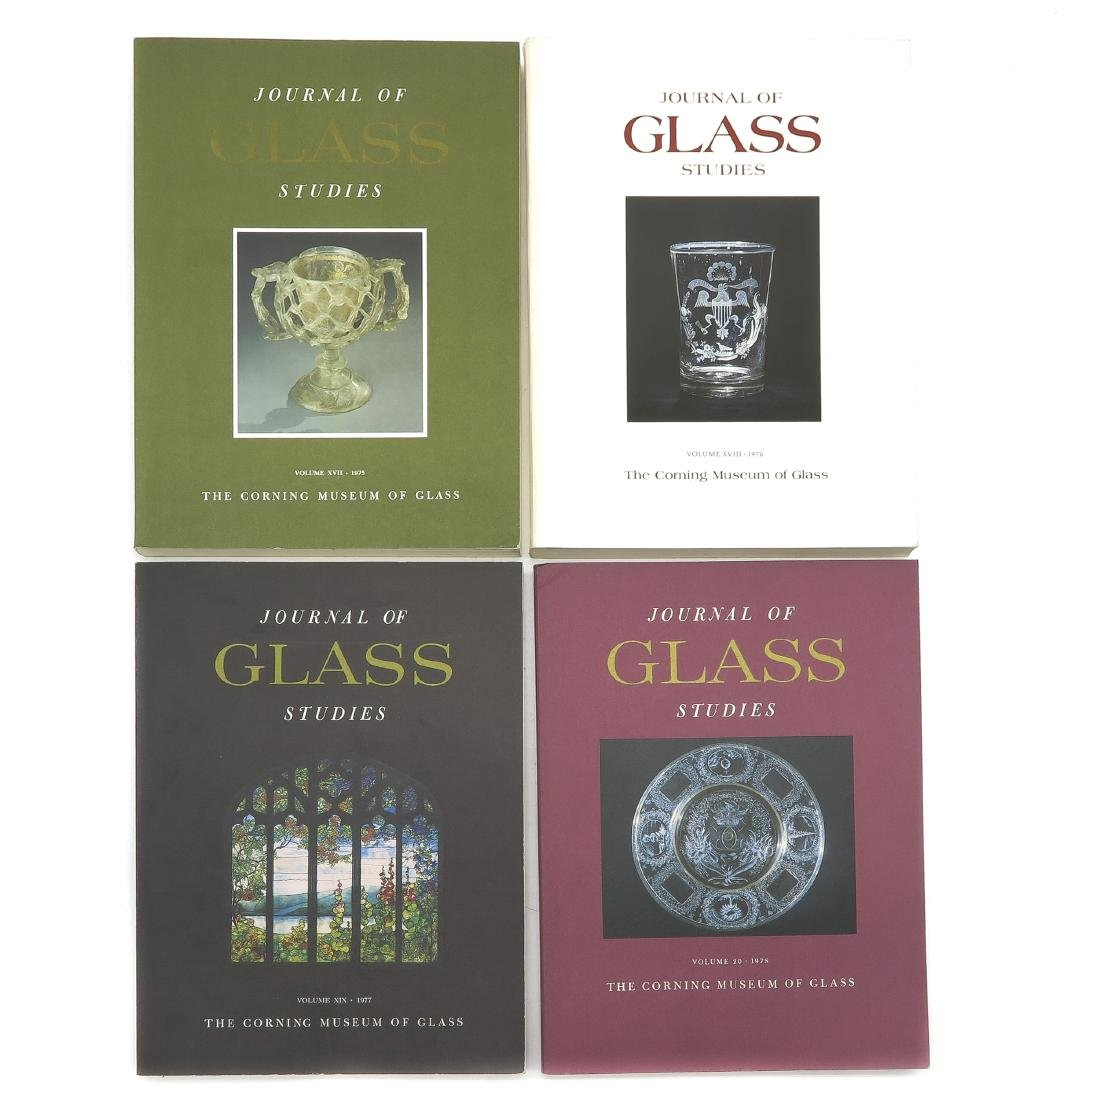 Diverse Lot of 13 Journal of Glass Studies Books - 3